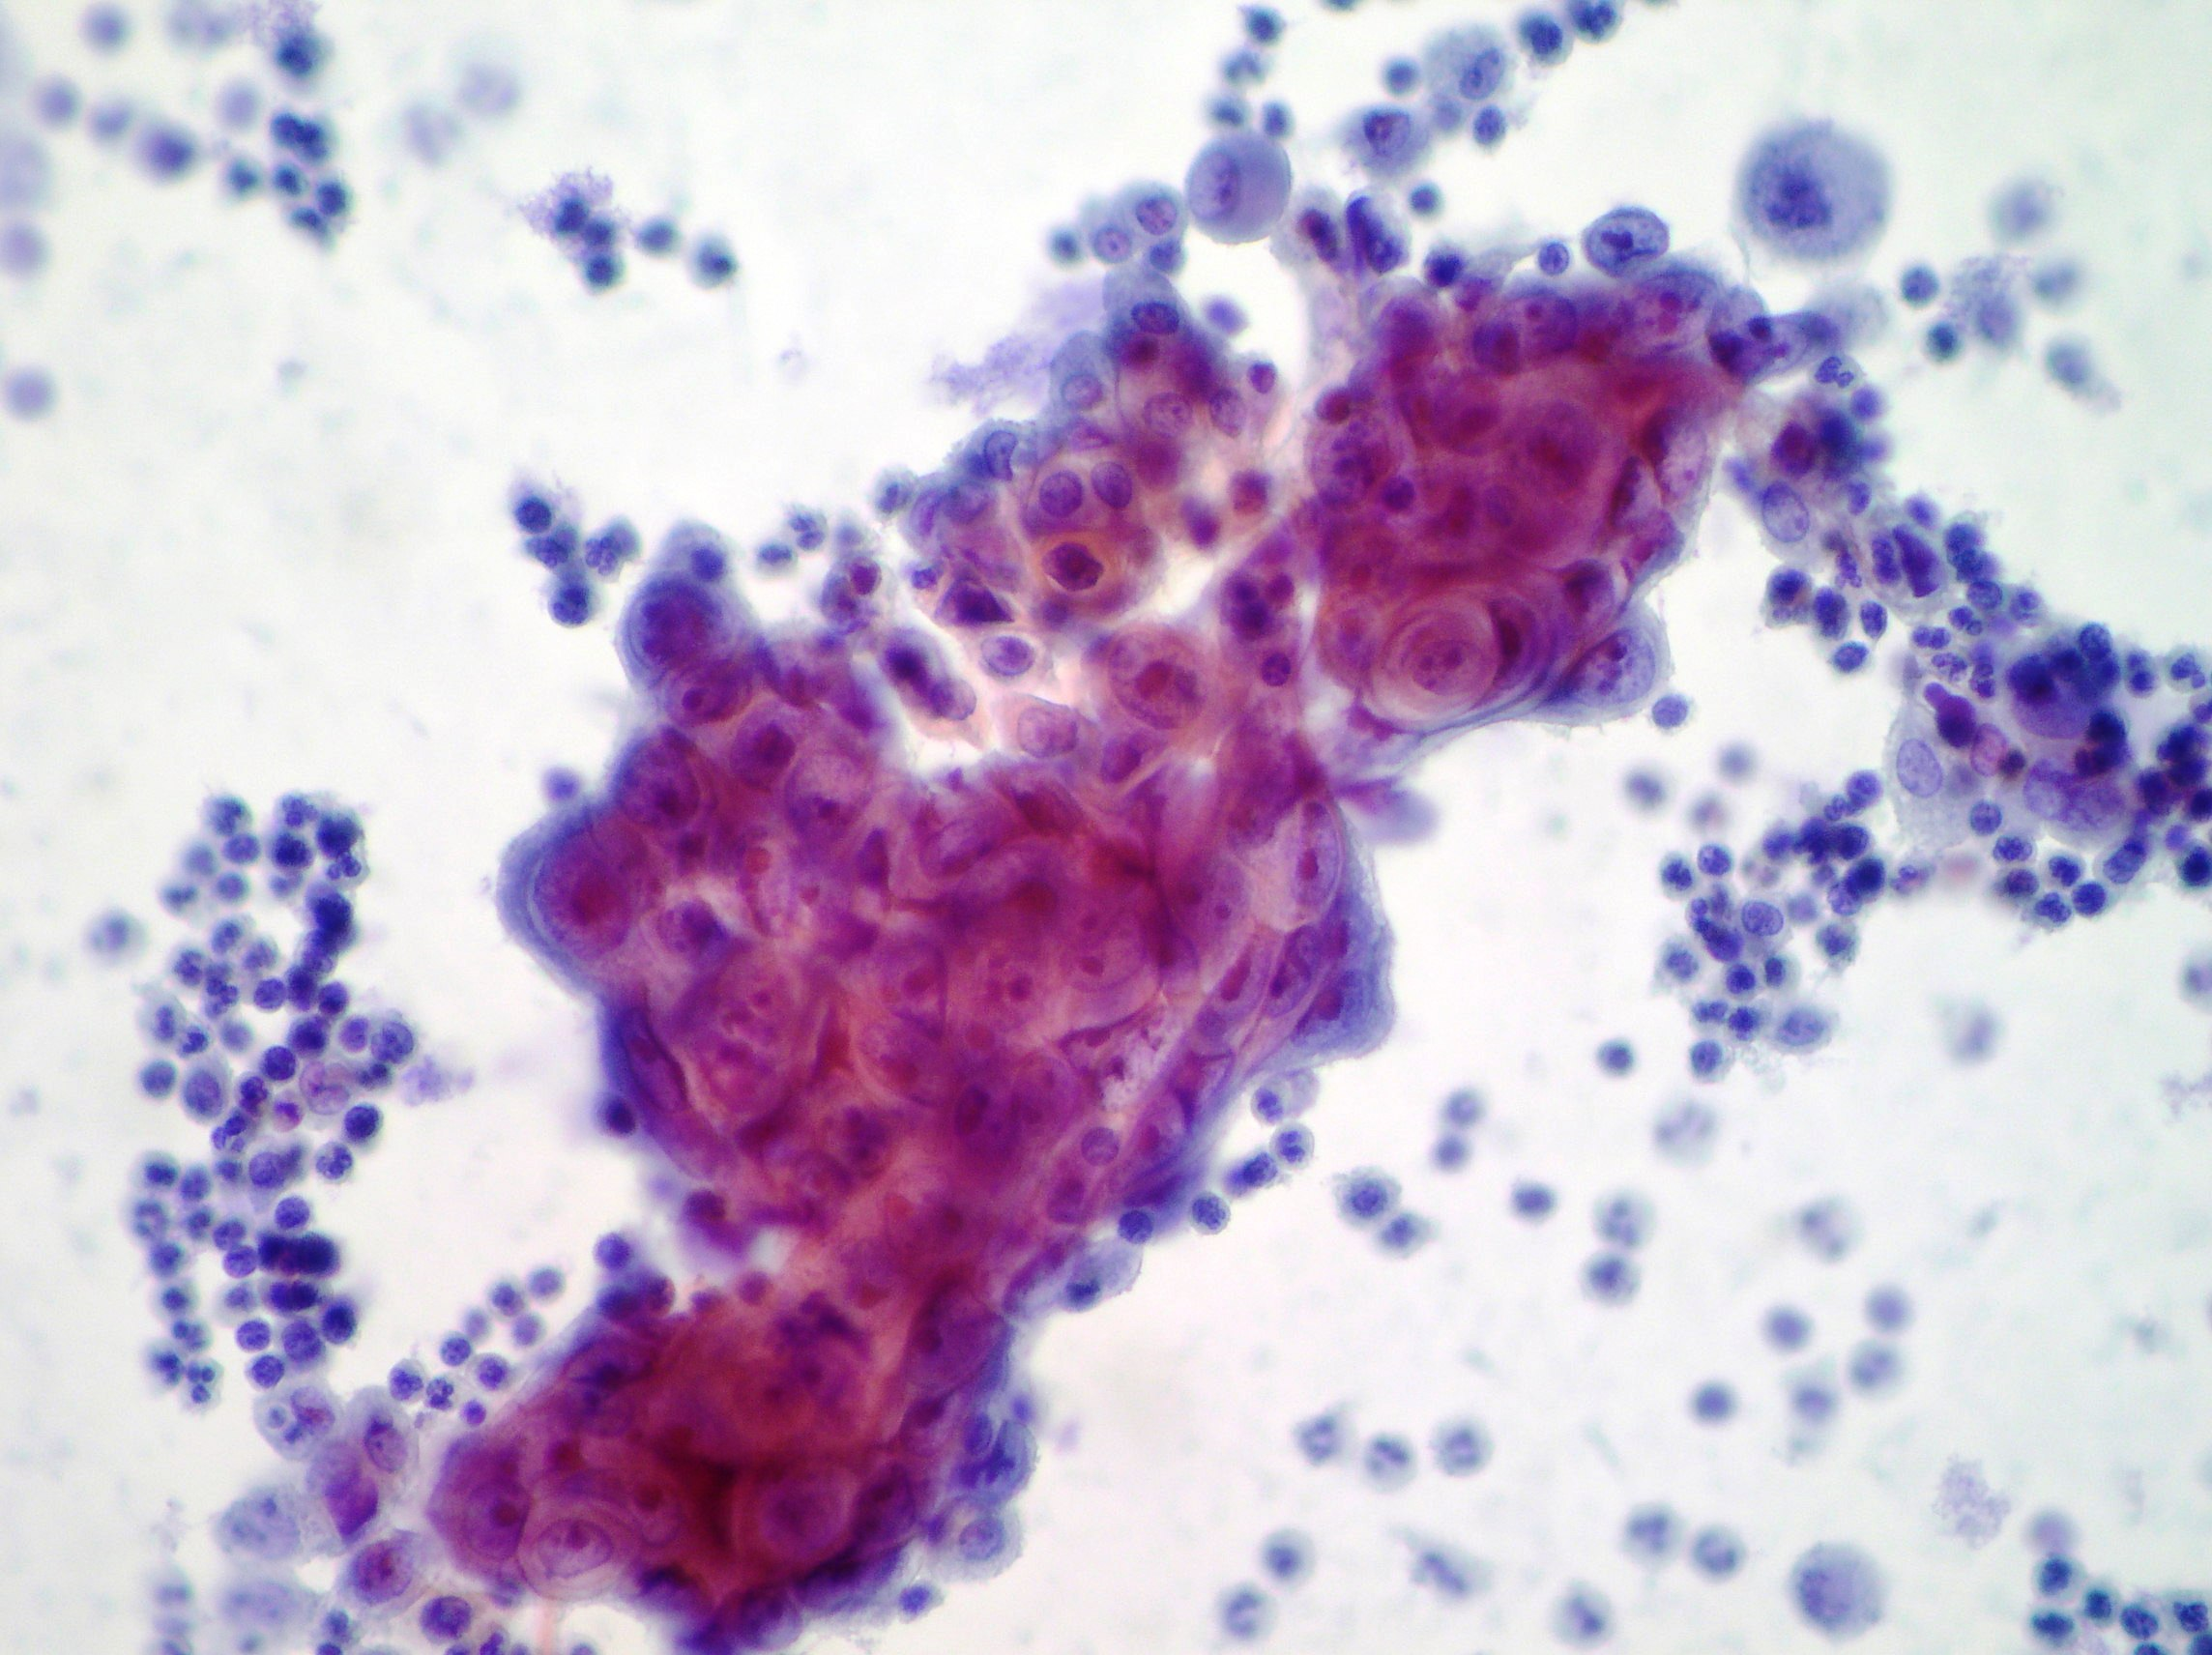 effusion cytopathology. Ascitic cytopathology ...